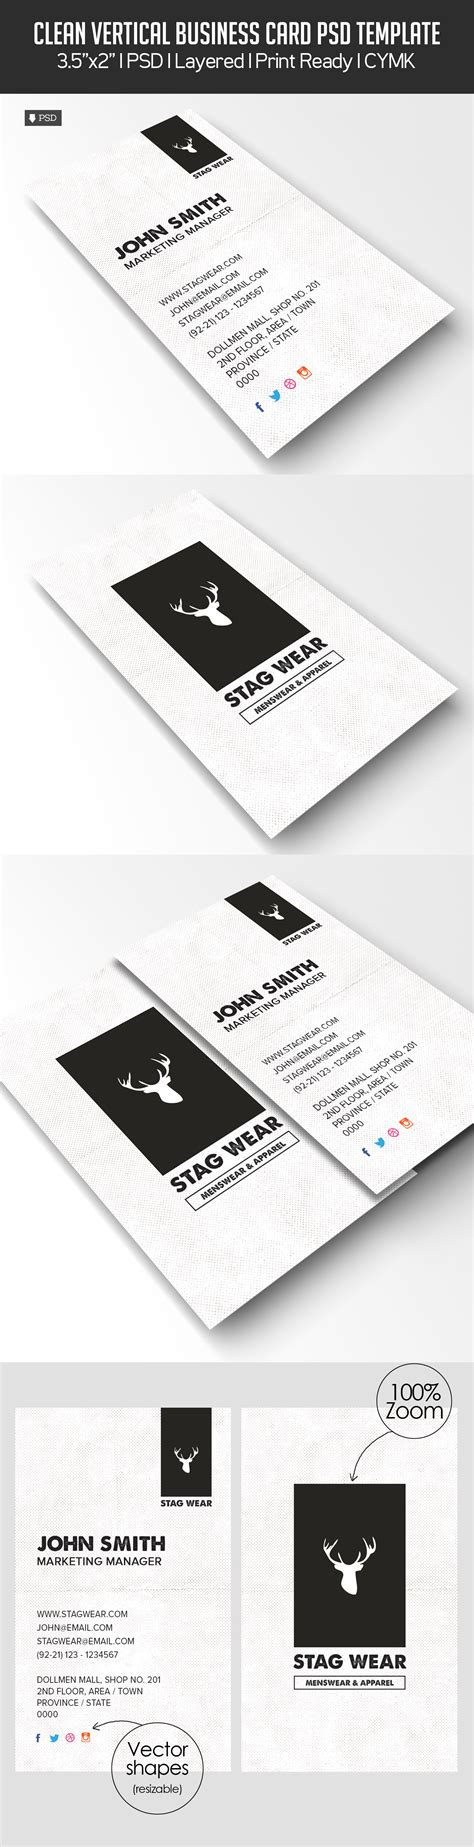 vertical template for a business card using avery 5877 freebie vertical business card psd template idevie